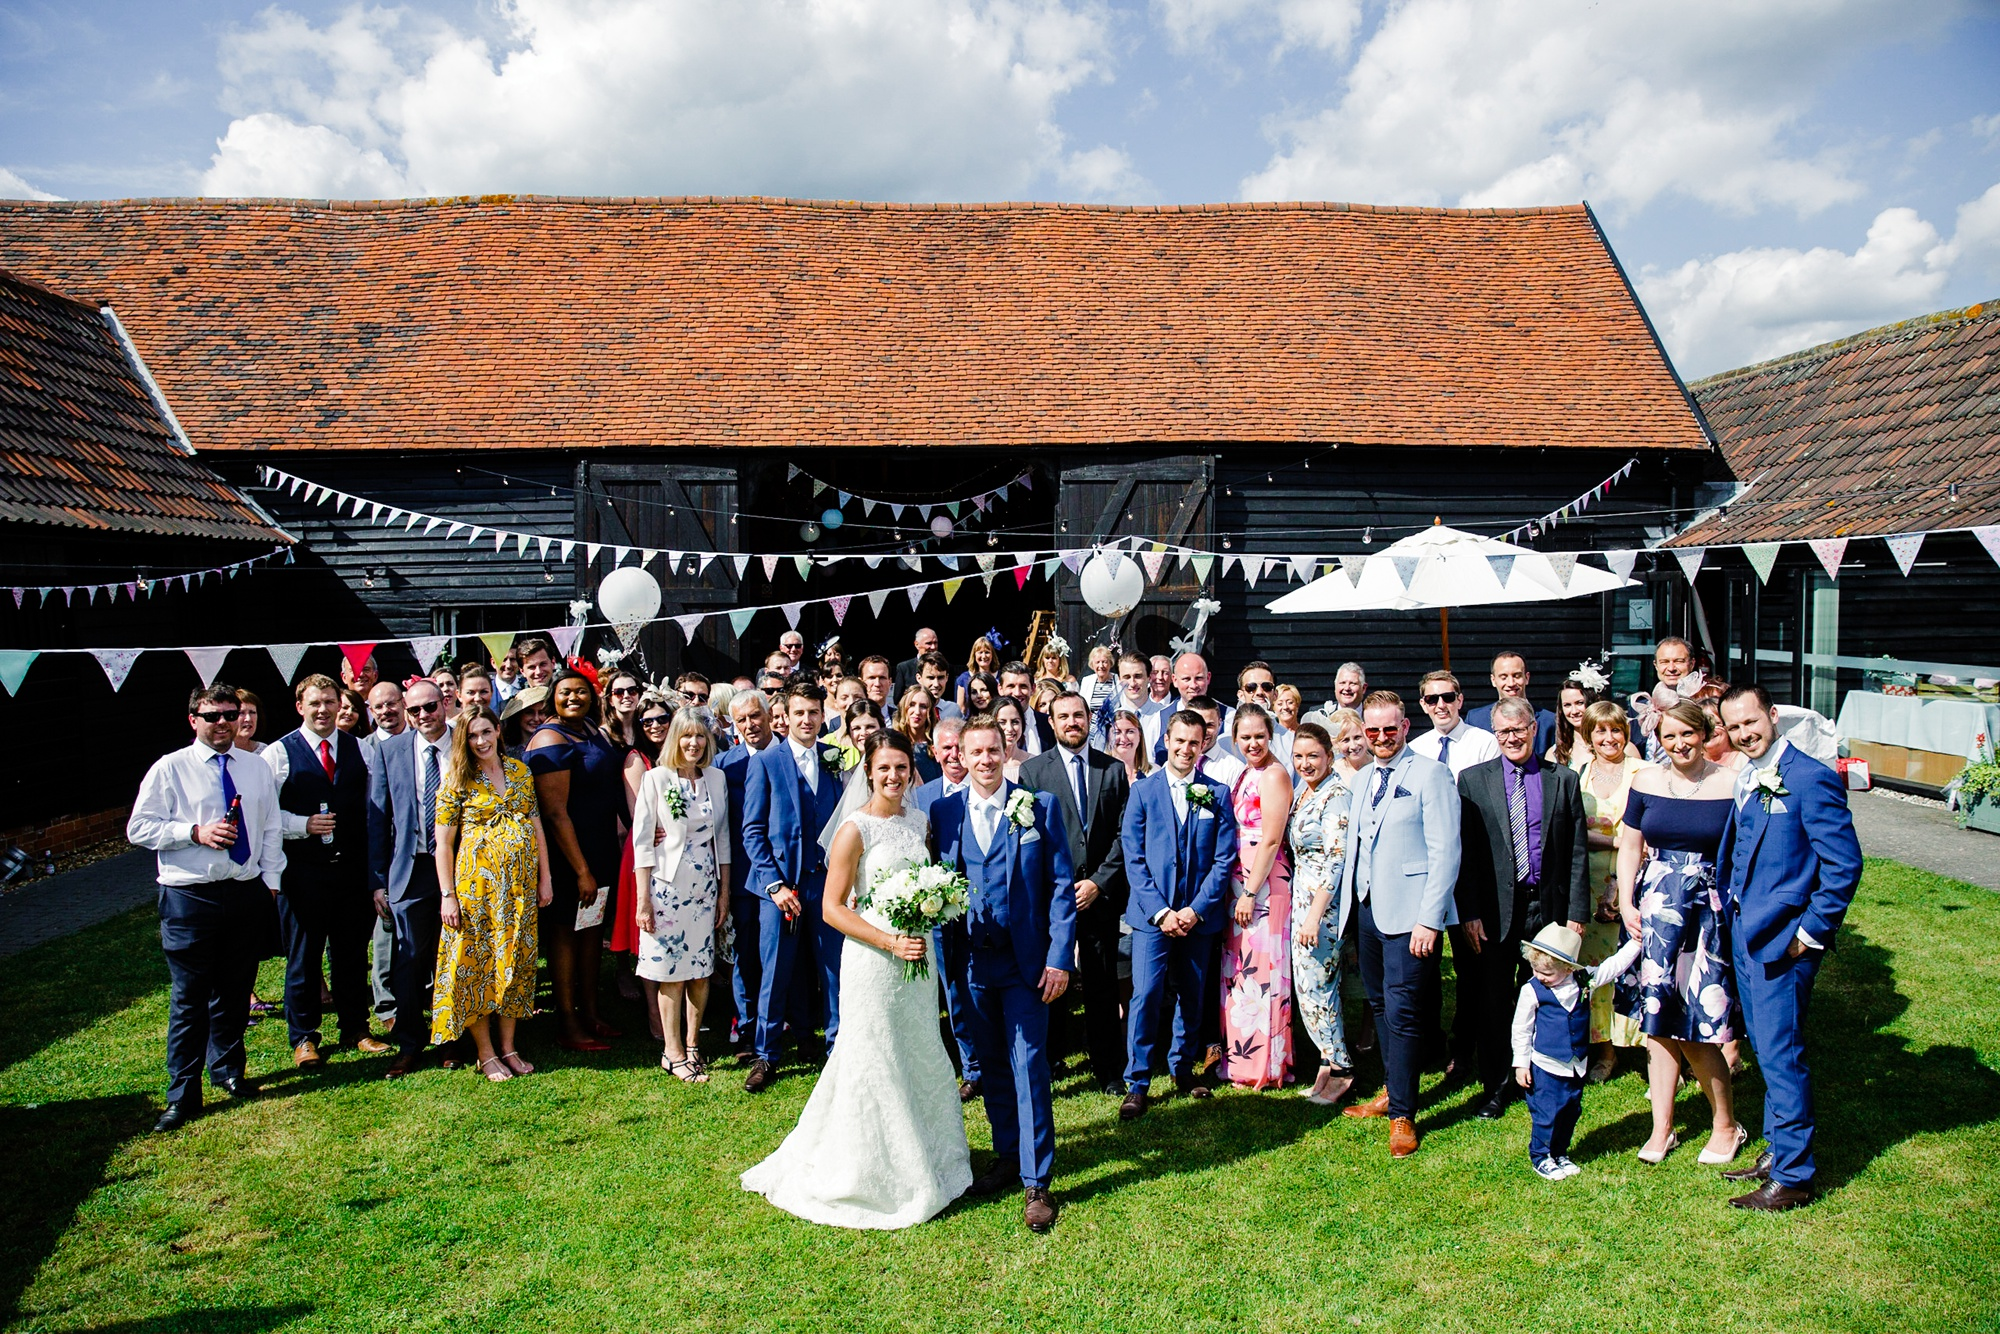 Essex Barn Upminster Wedding Photographer-148.jpg